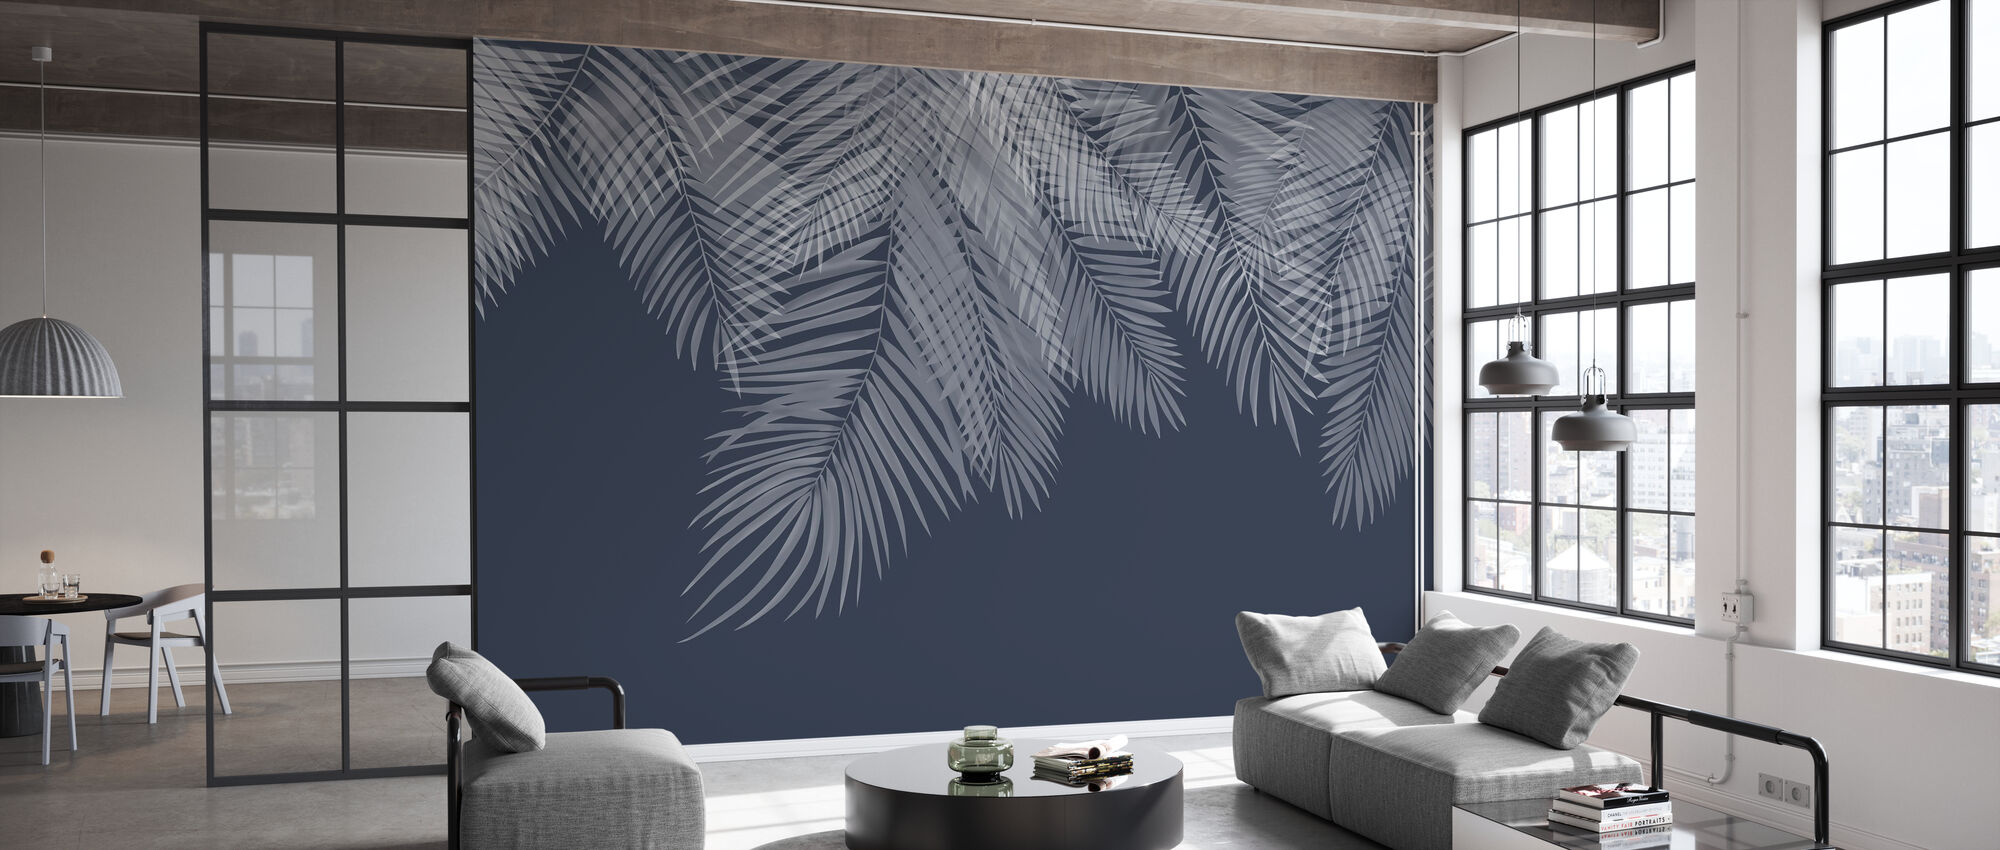 Hanging Palm Leaves - Blue - Wallpaper - Office